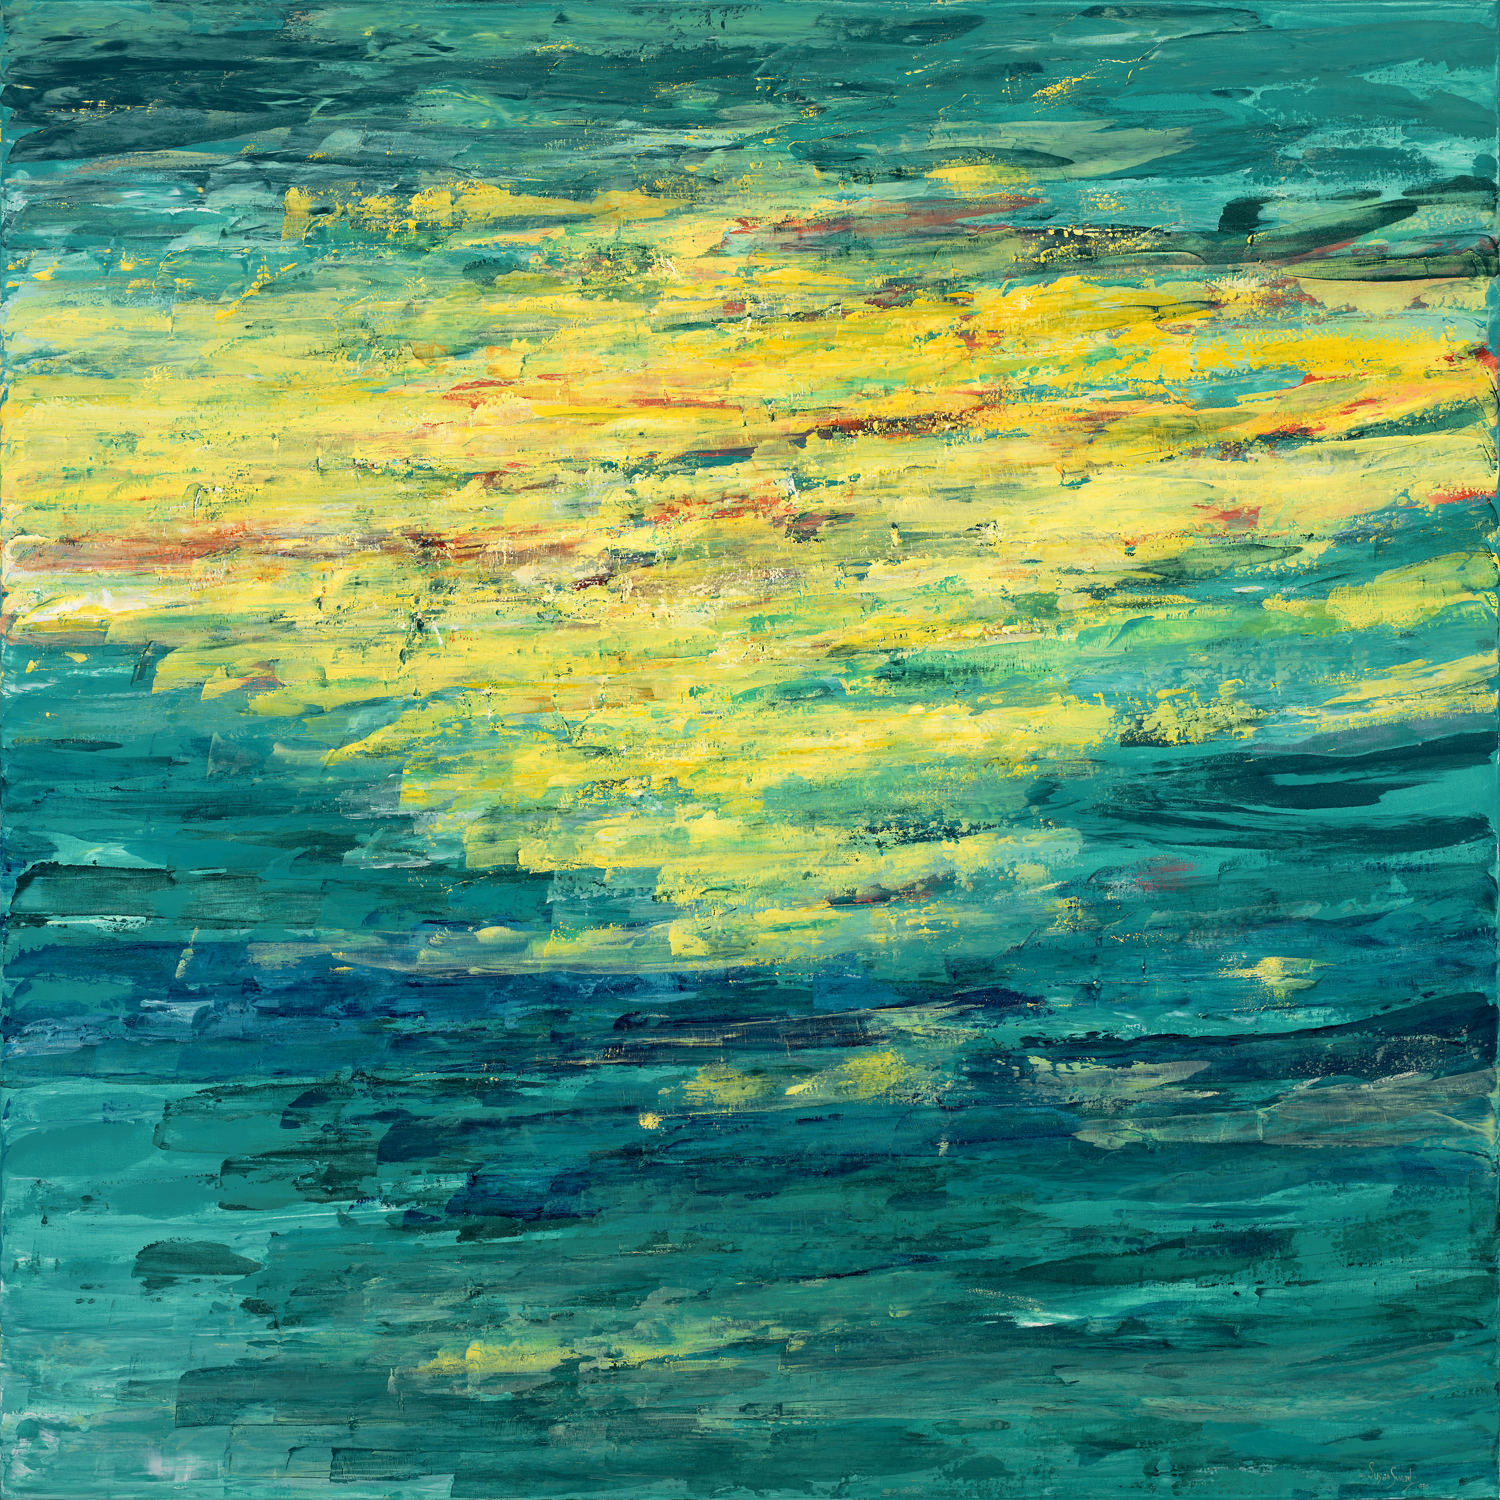 Turquoise Reflections 72x72.png